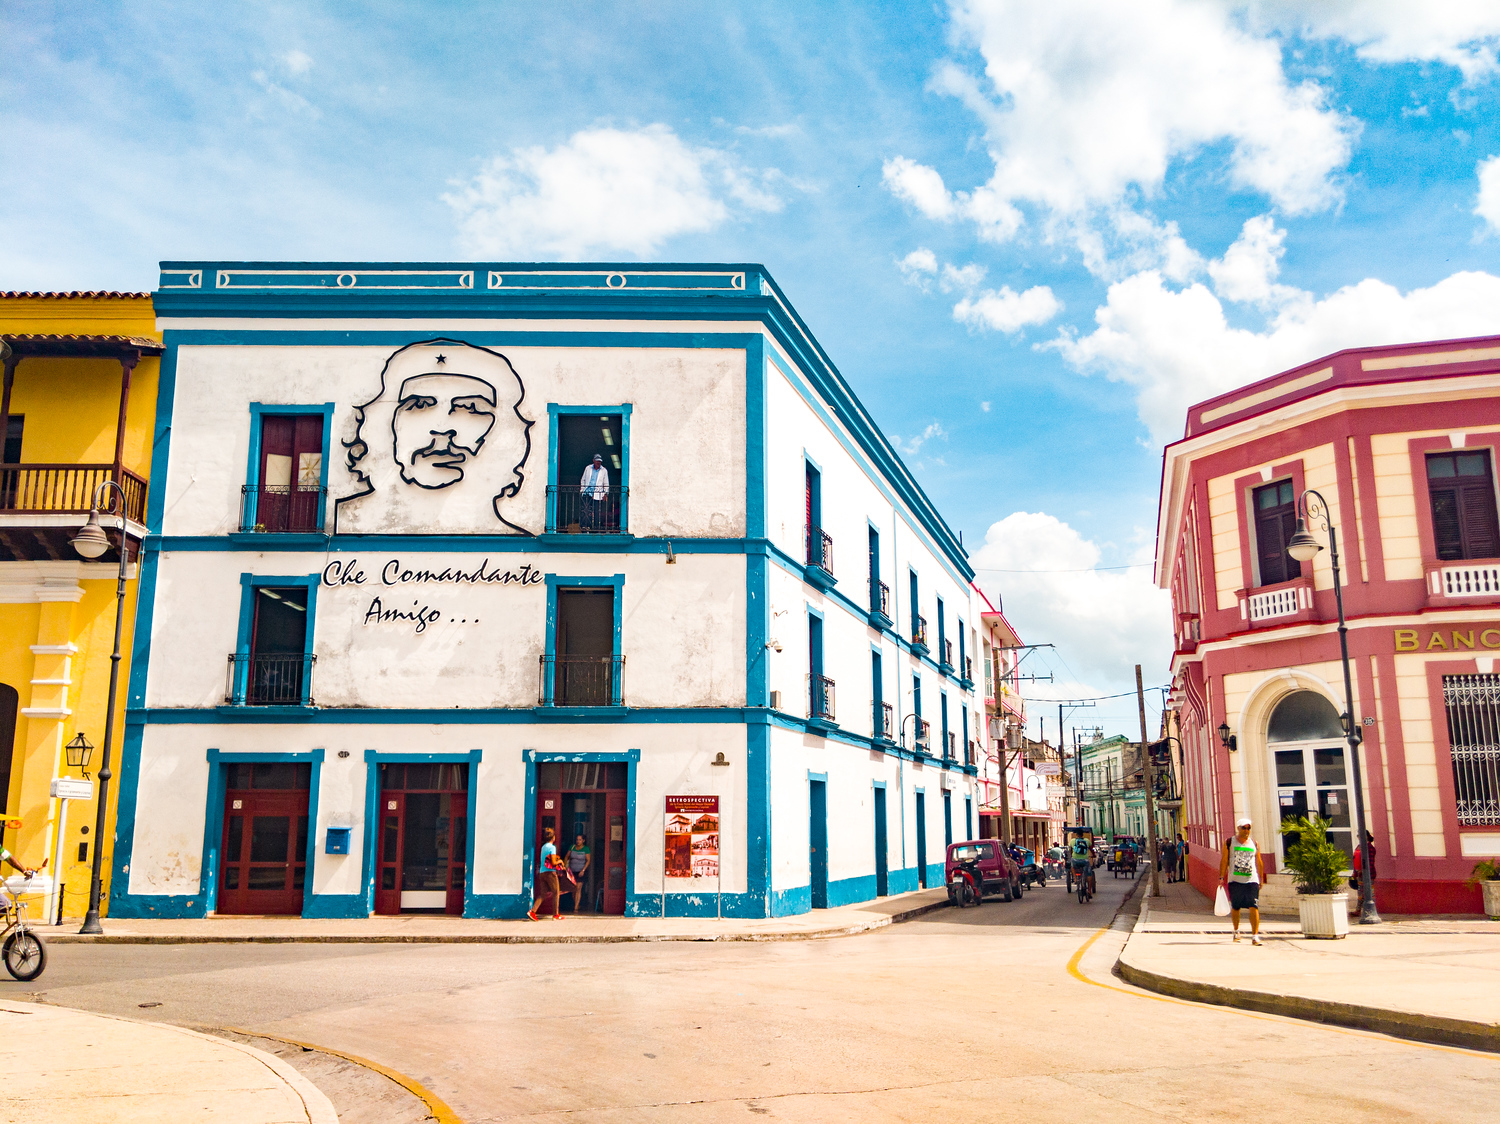 Buildings on the main square in Camaguey Cuba